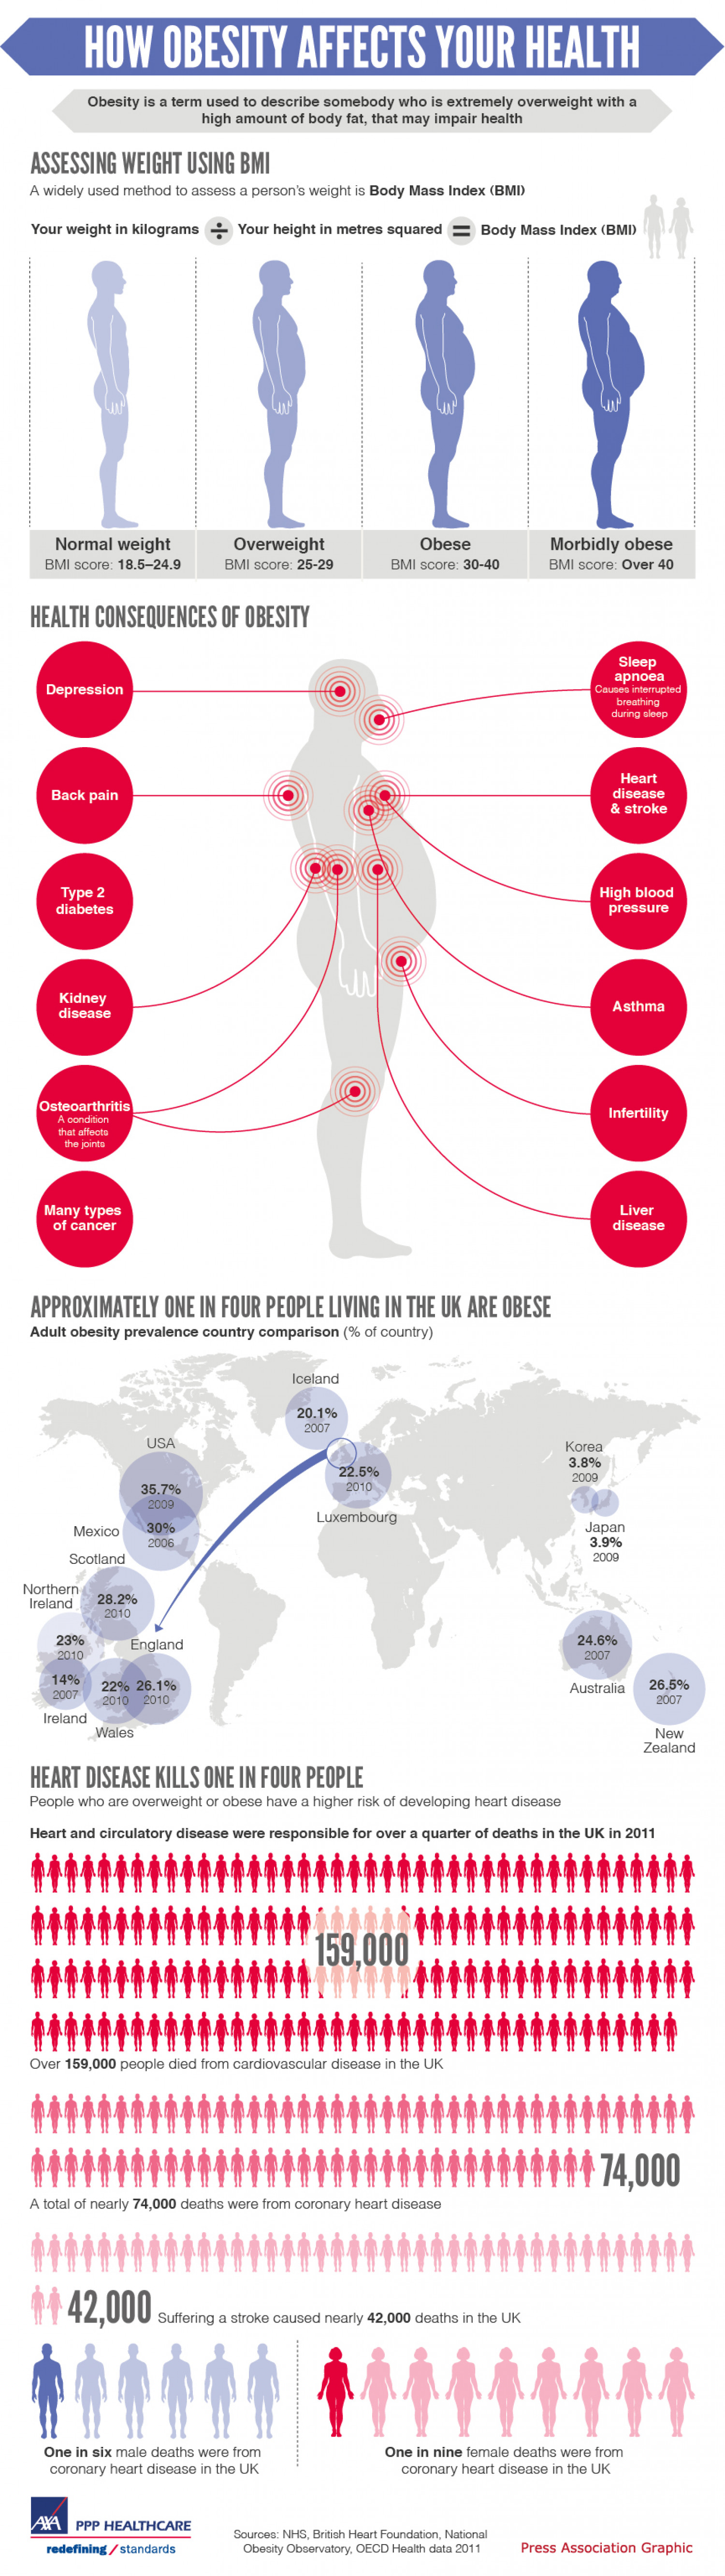 How Obesity Affects Your Health Infographic